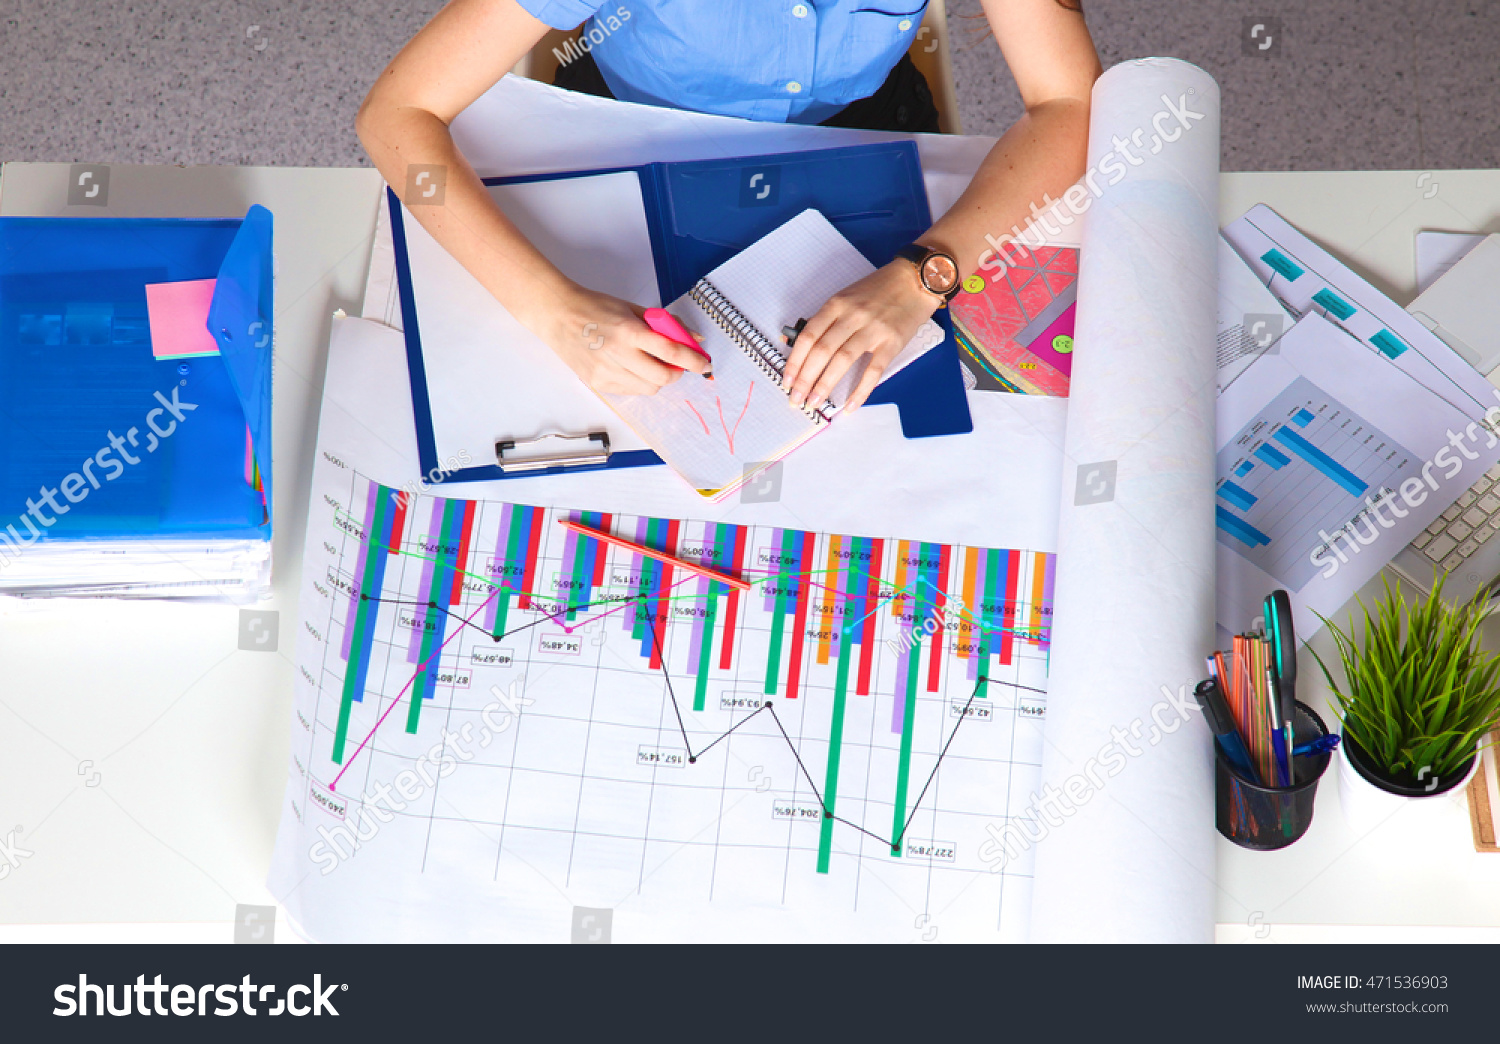 young graphic designer working on laptop stock photo 471536903 shutterstock. Black Bedroom Furniture Sets. Home Design Ideas